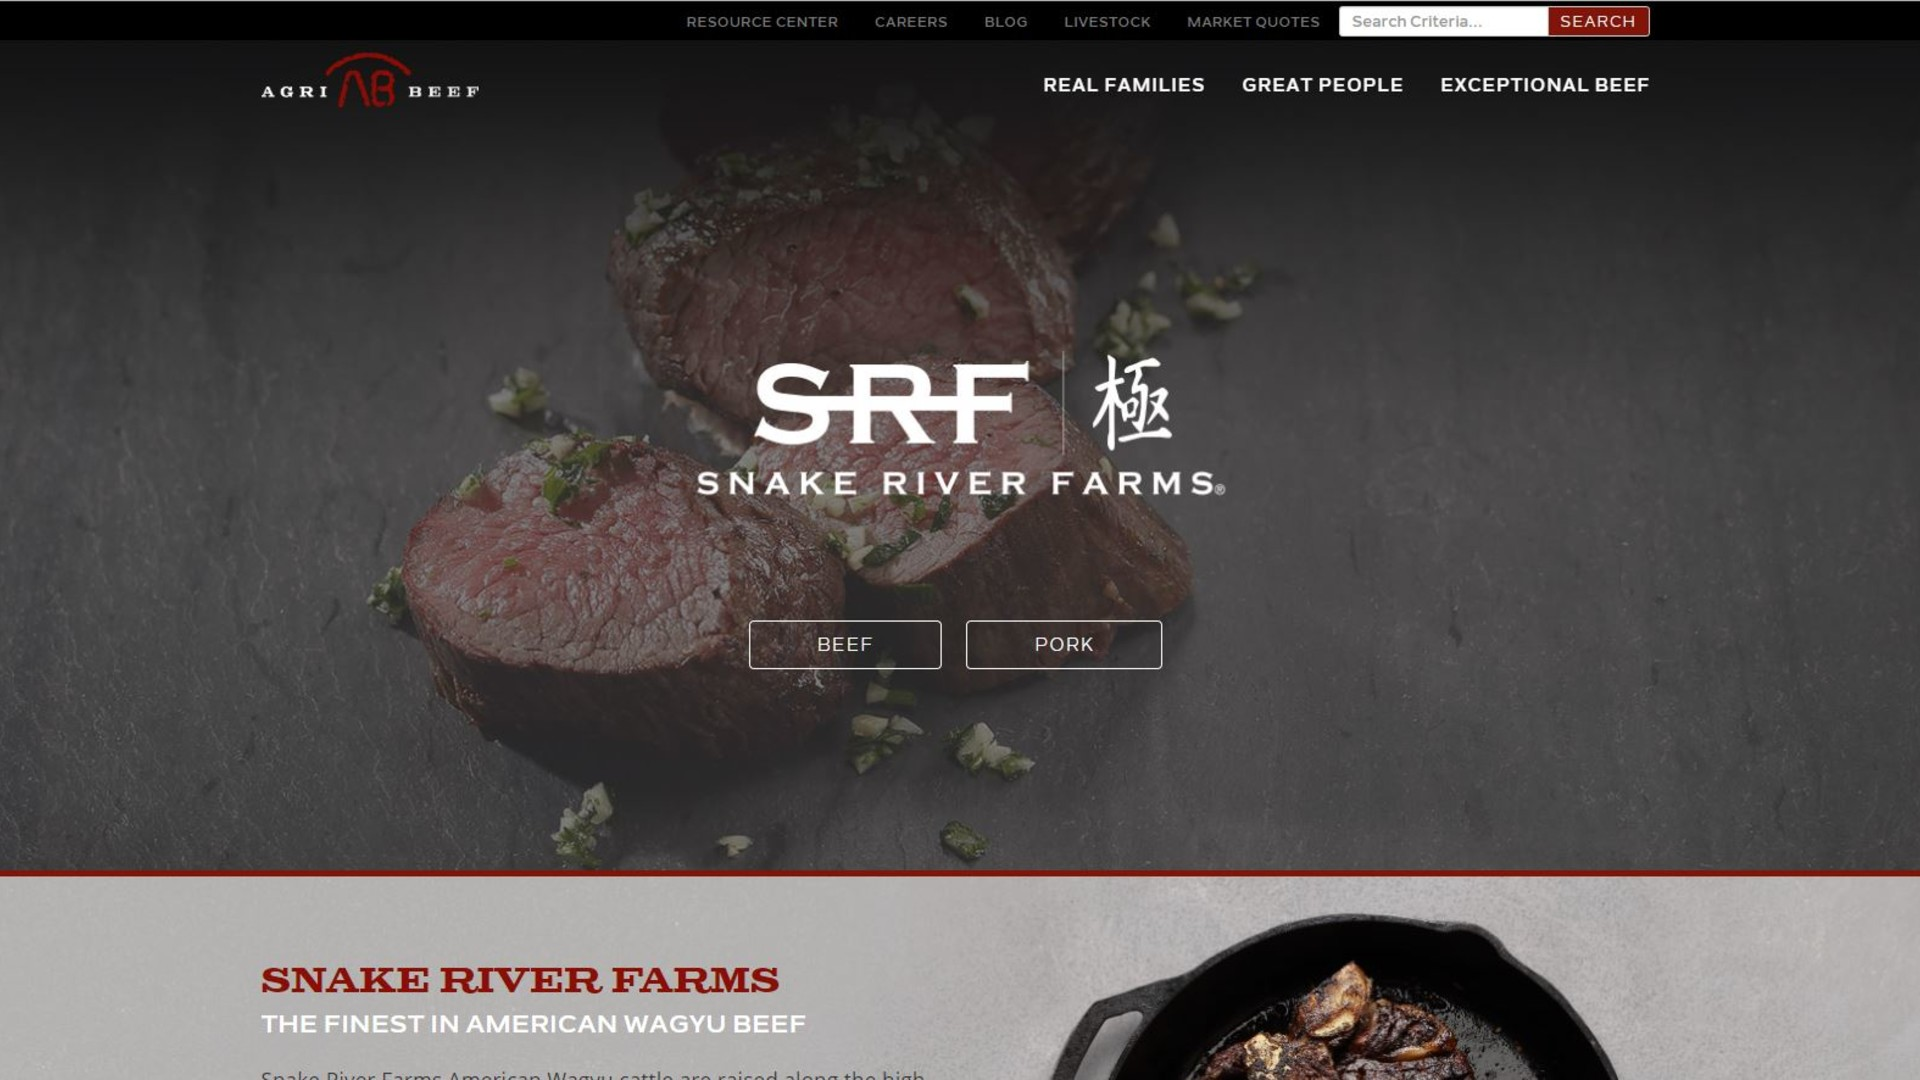 Order Delicious Agri Beef Holiday Items Online